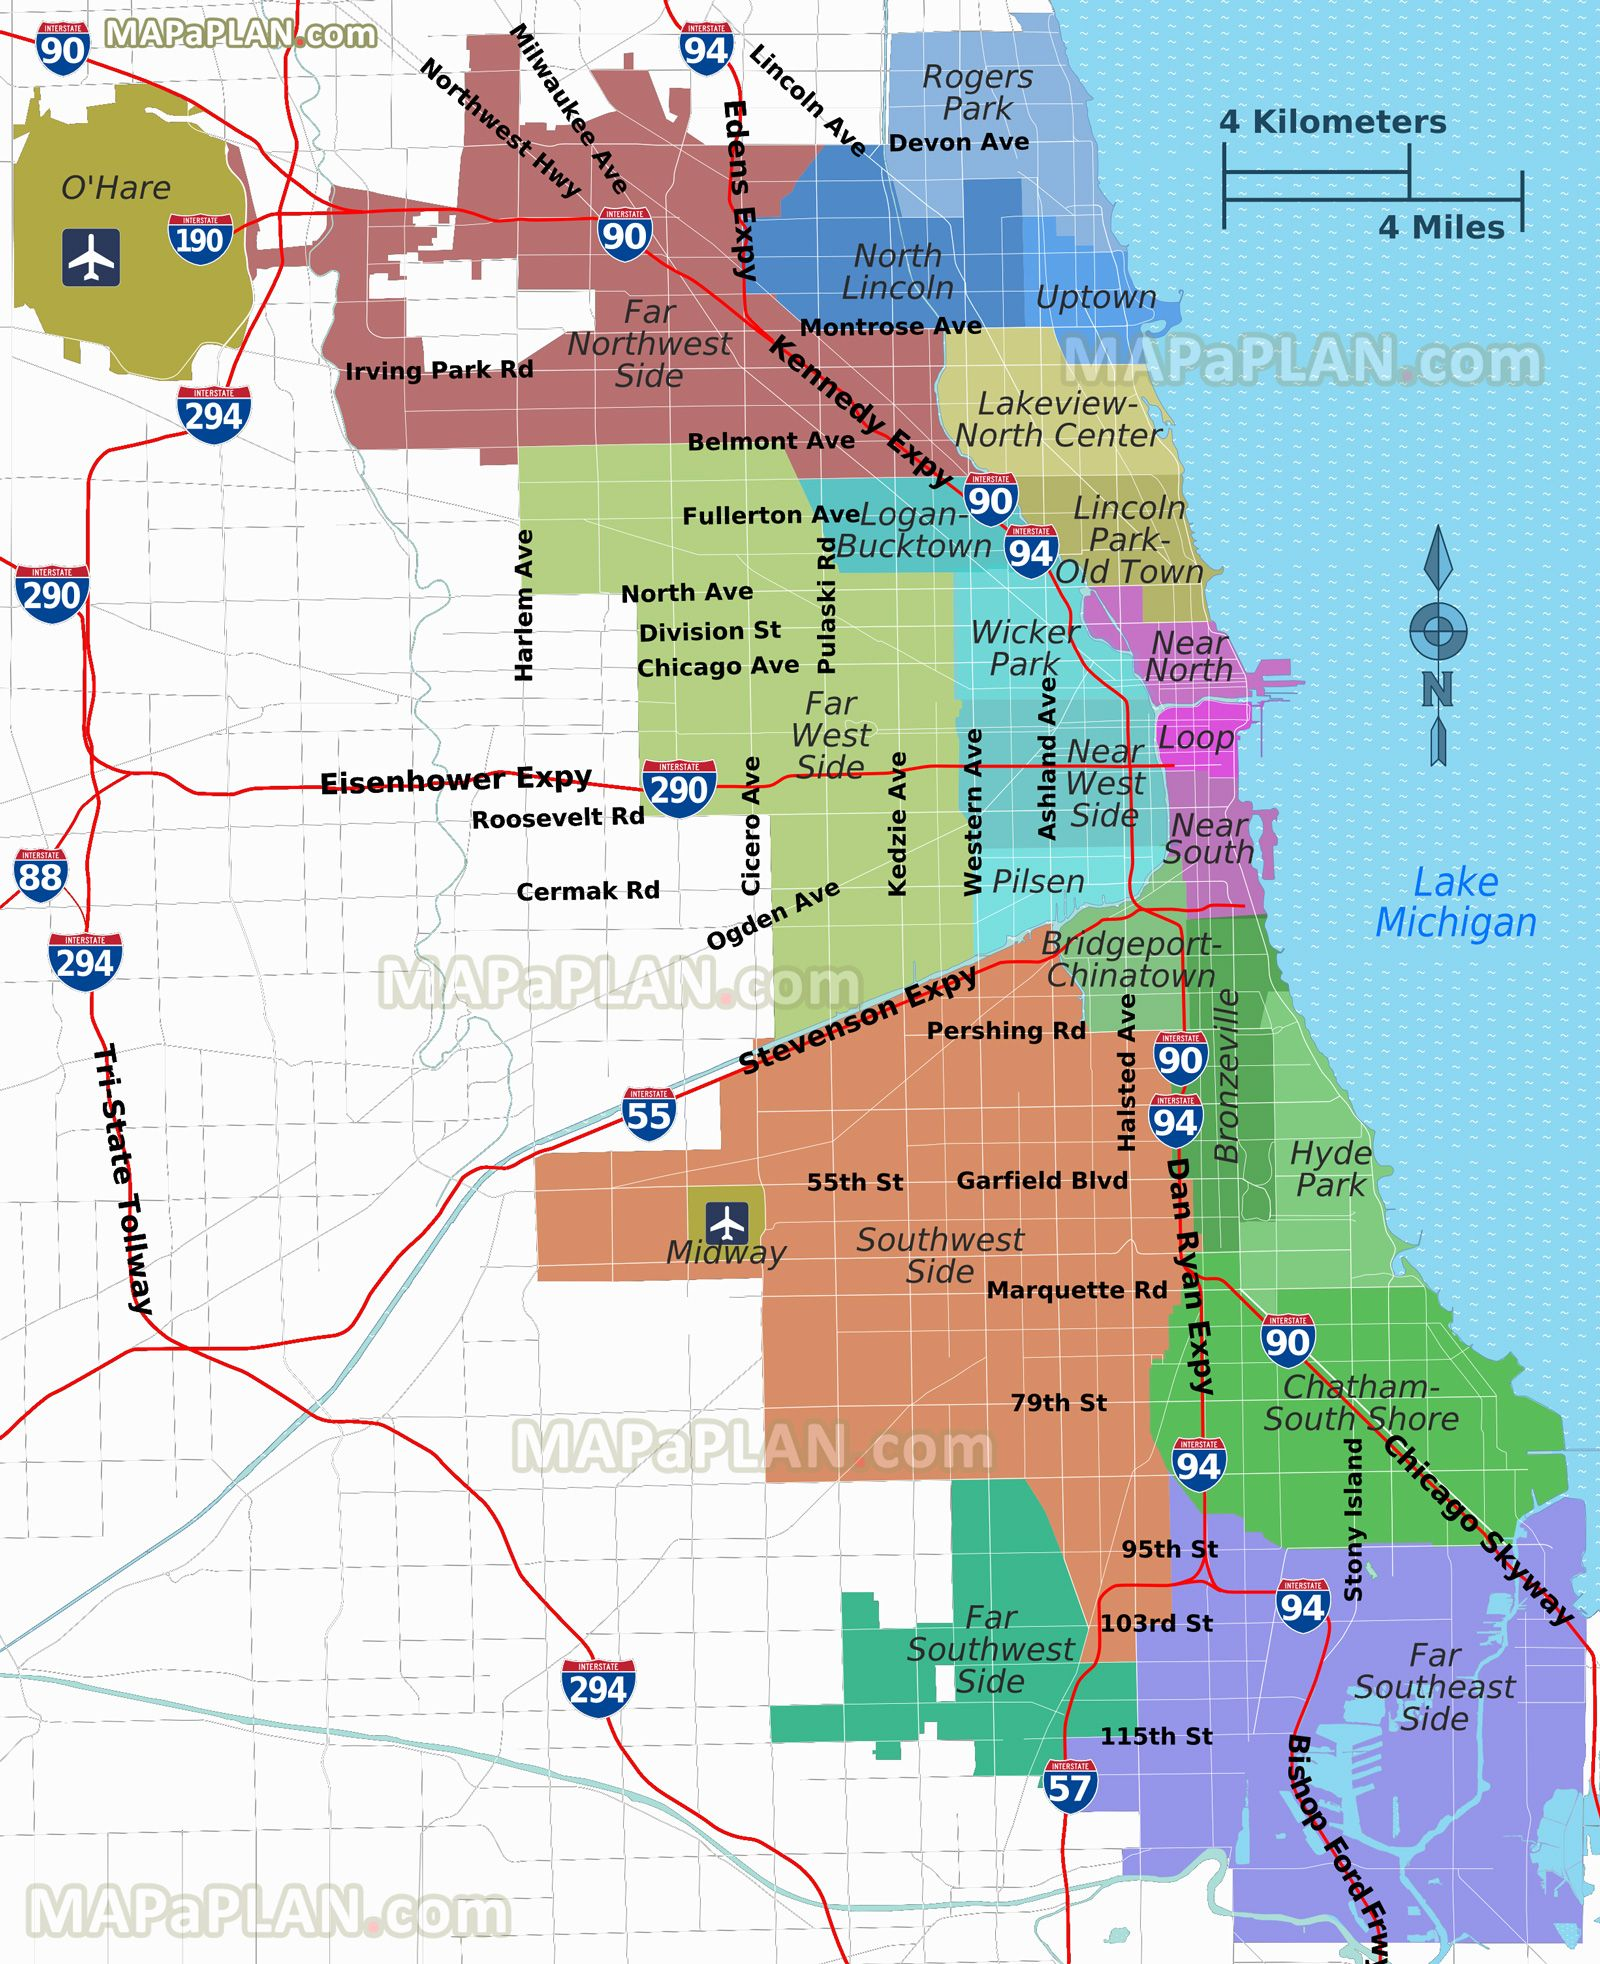 districts neighborhoods regions suburbs zones areas lake ...